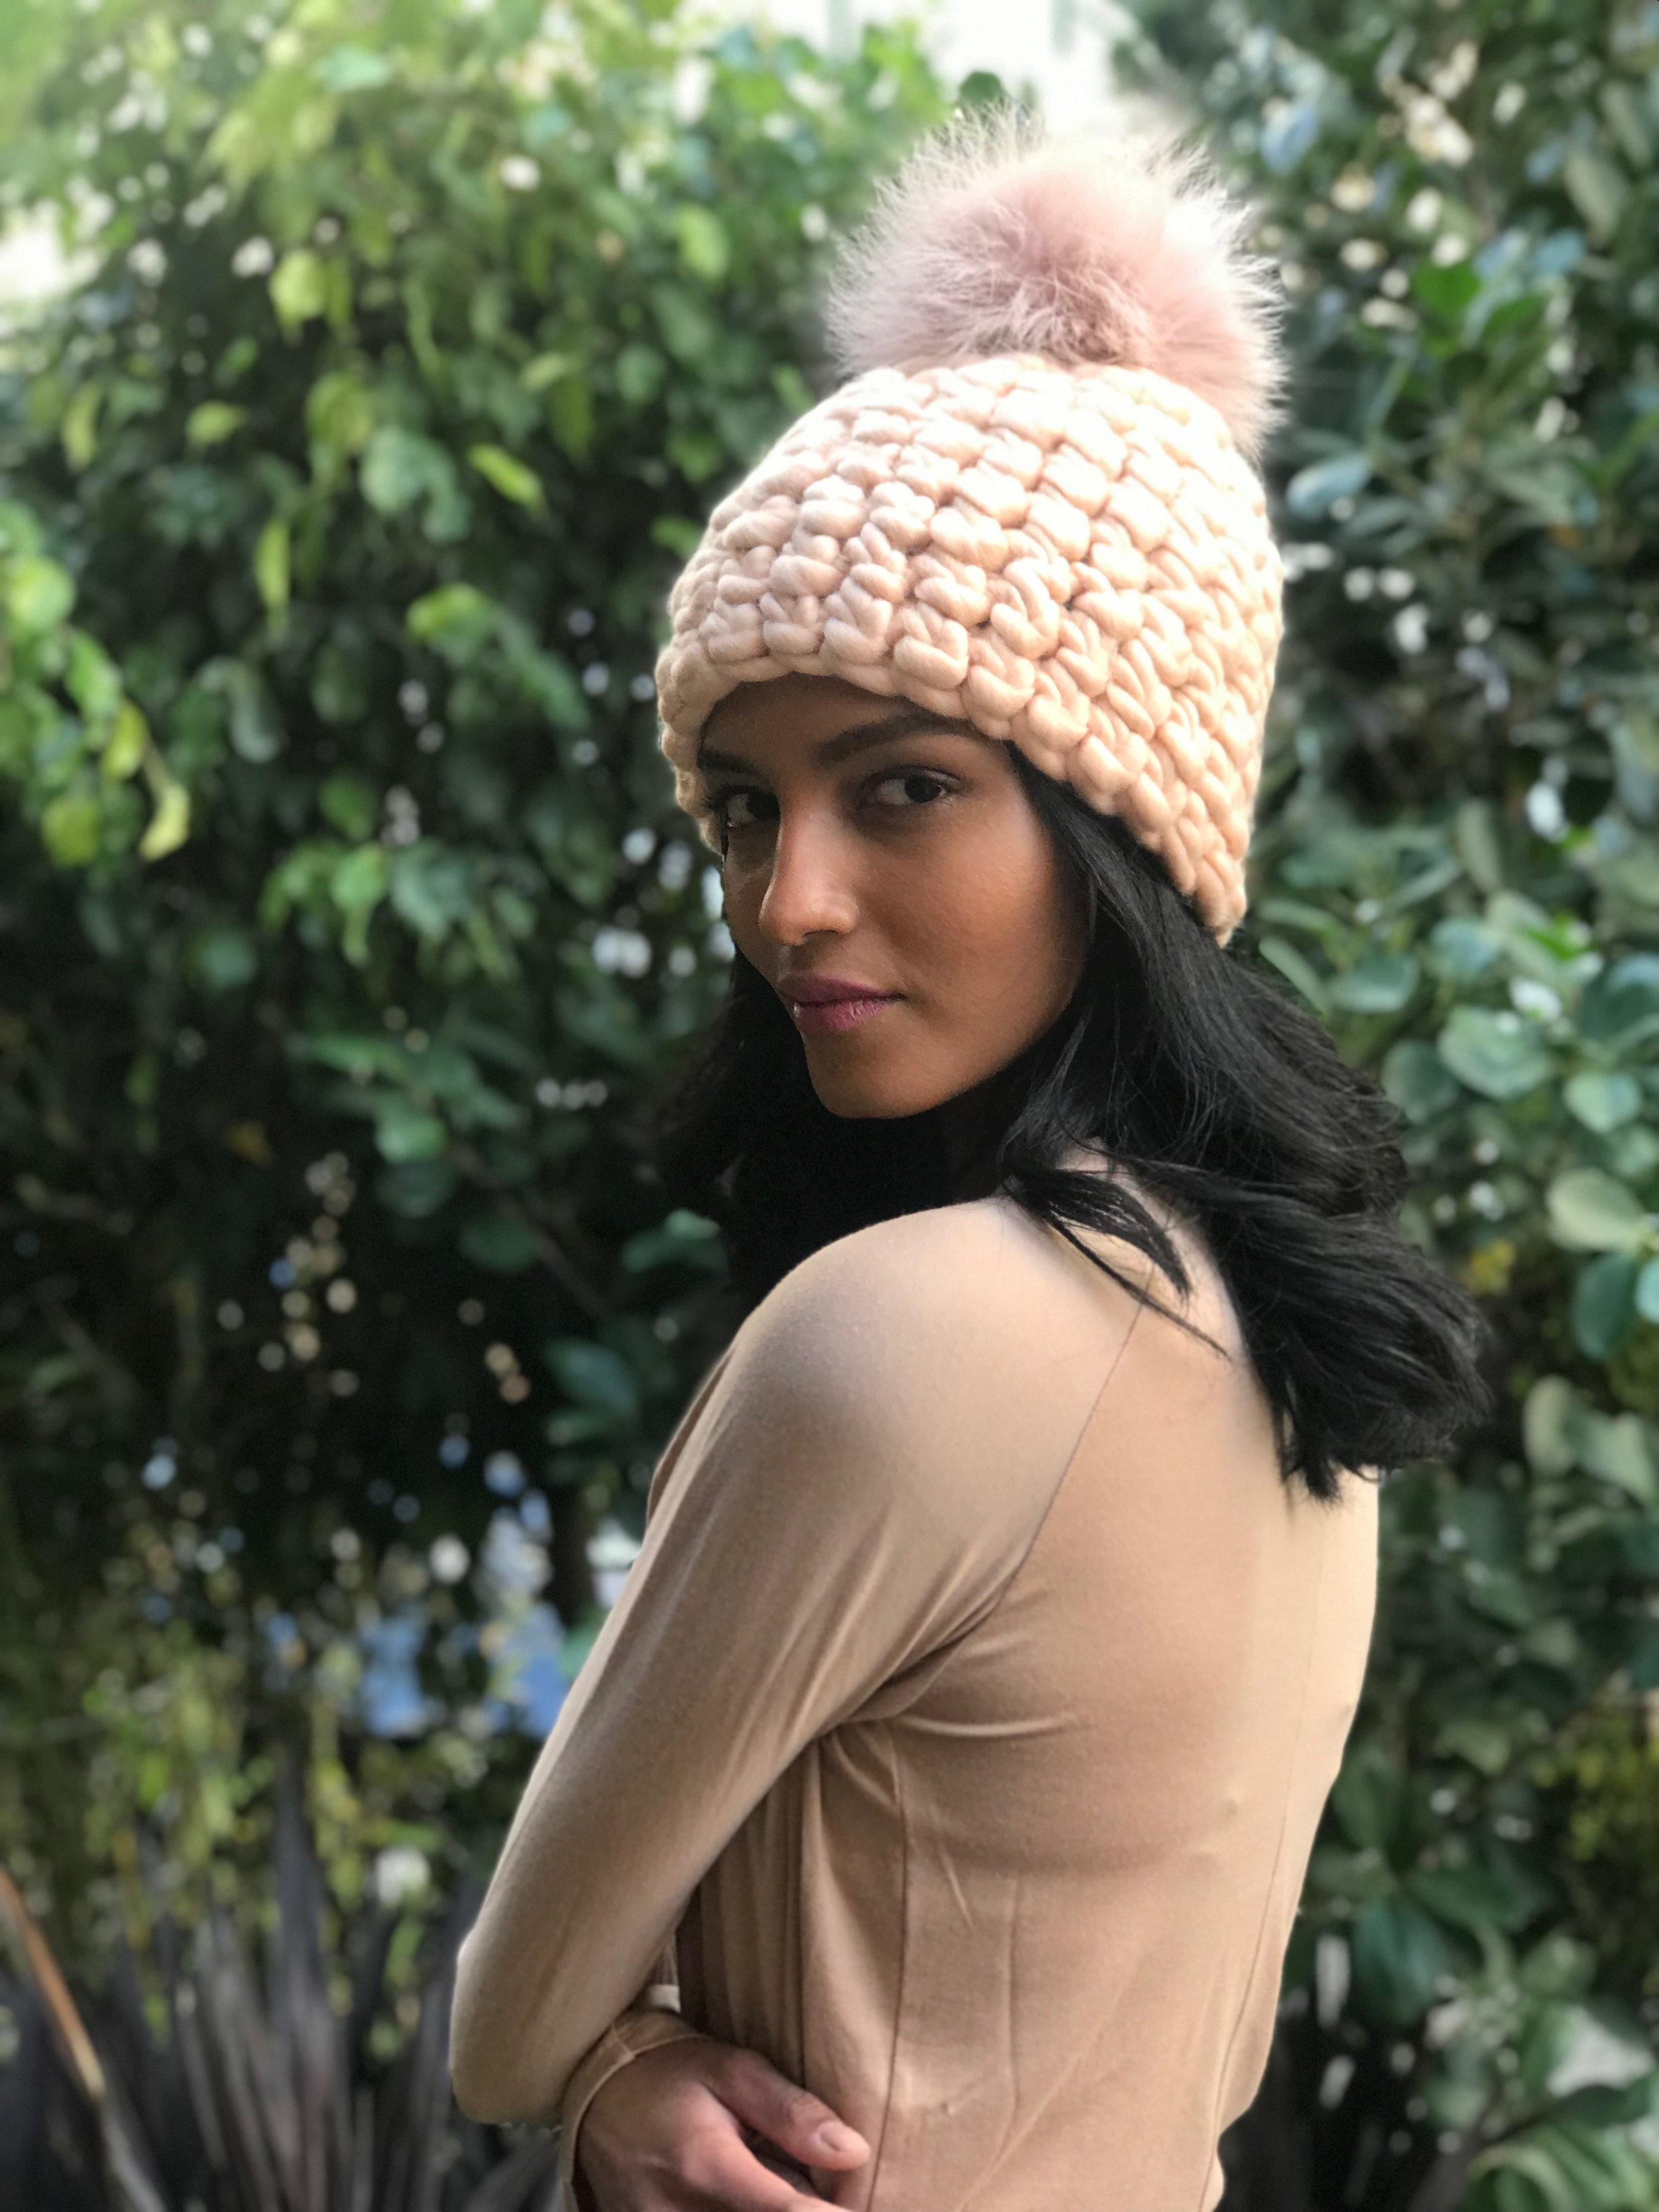 shaanti is wearing  the vanilla beanie pomster with arctic pink pom